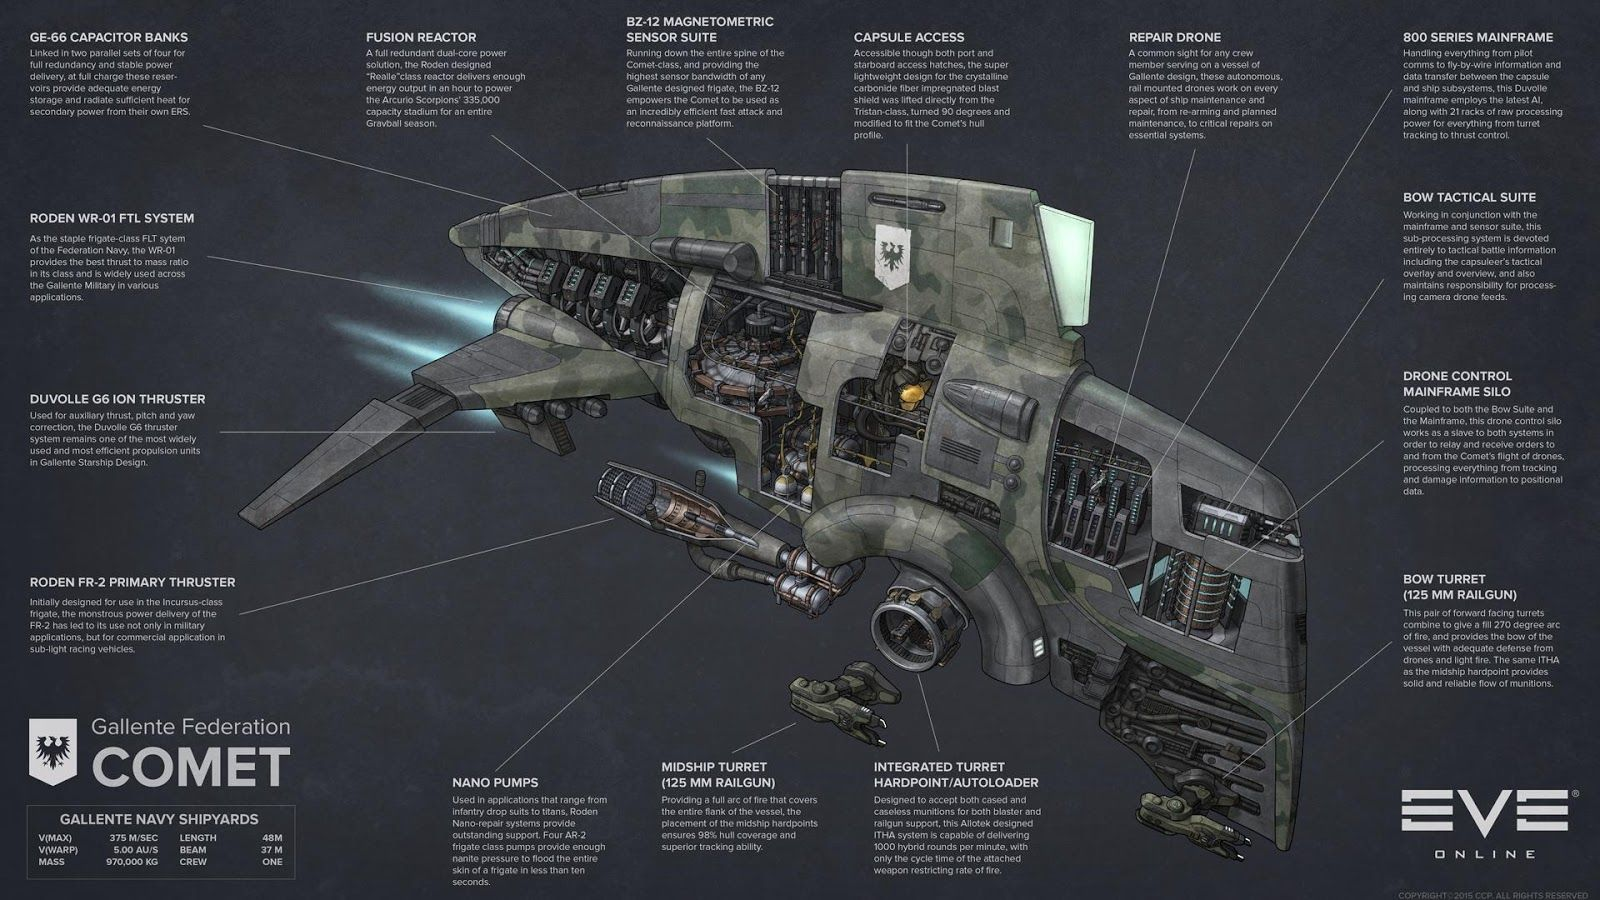 Eve online spaceship blueprints and schematics Comet CutAway | EVE ...